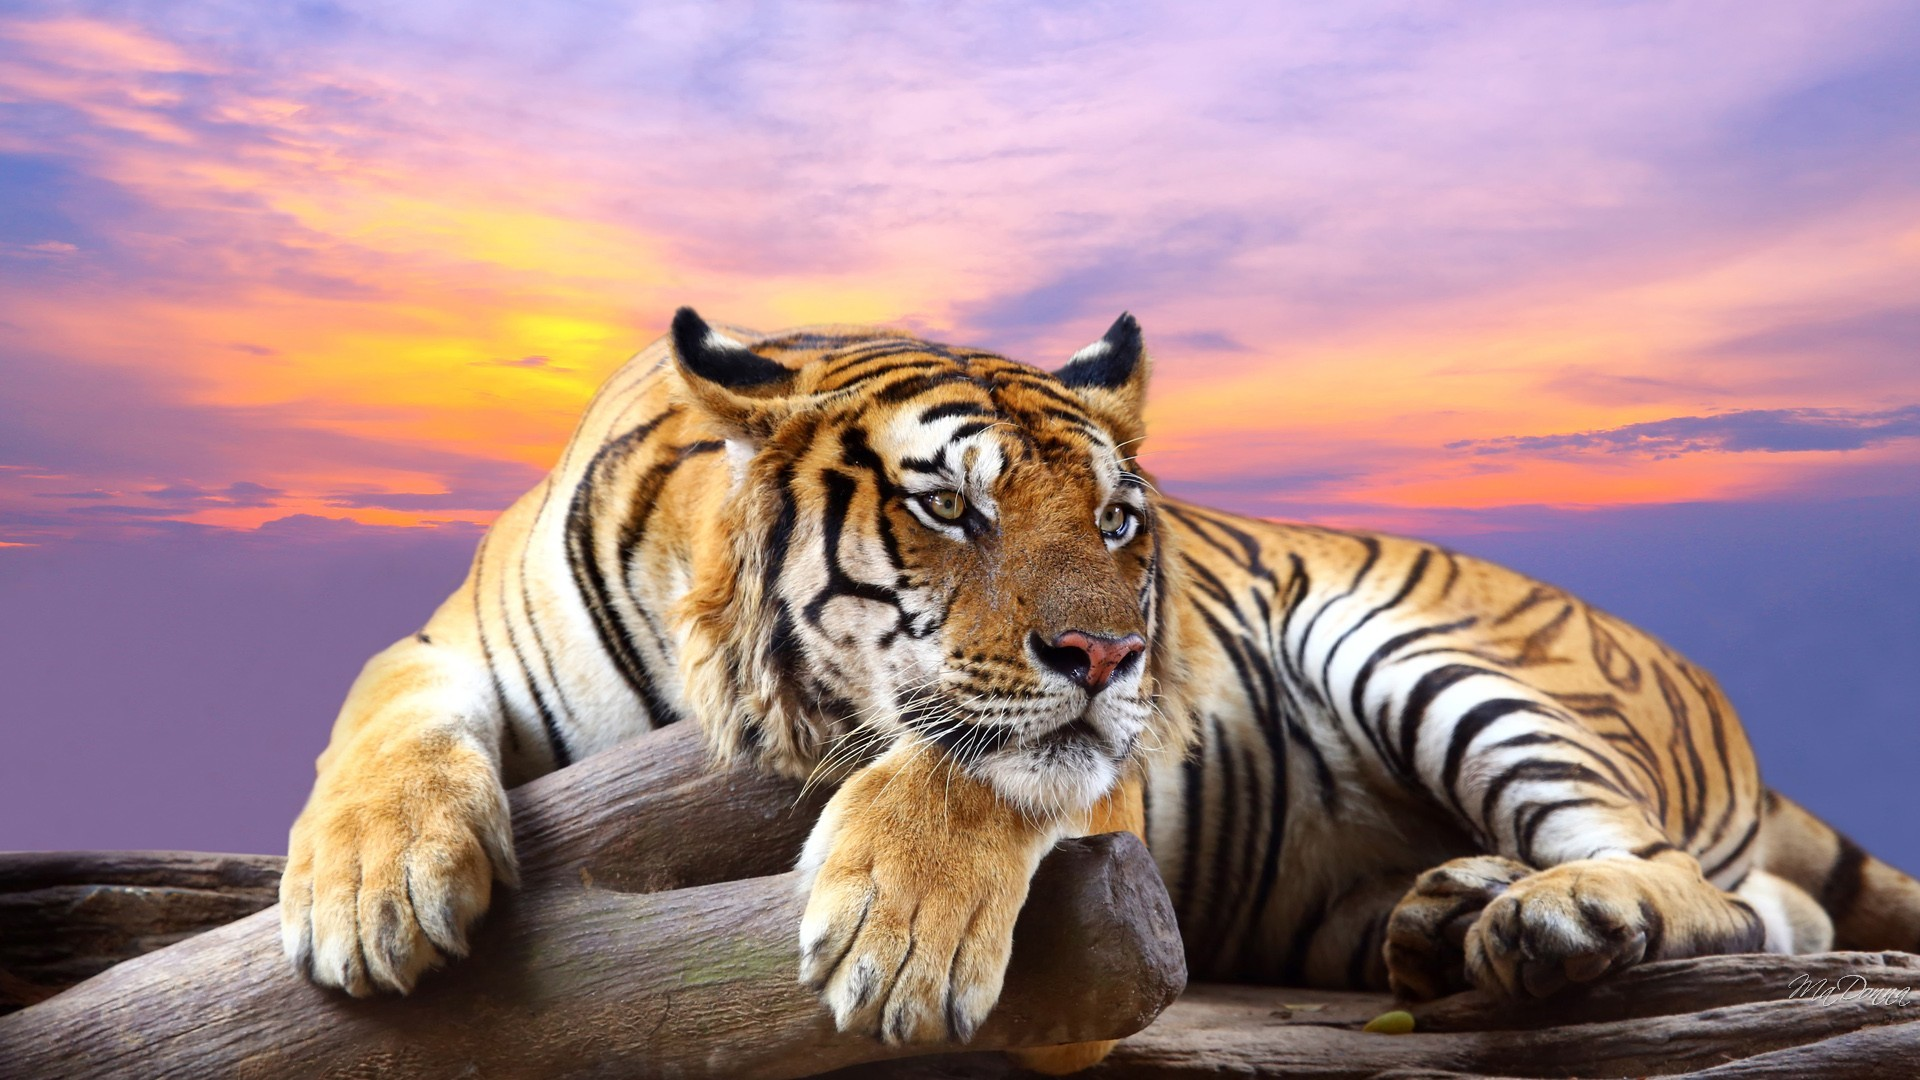 Tiger wallpaper download free awesome high resolution for Sfondi 1920x1080